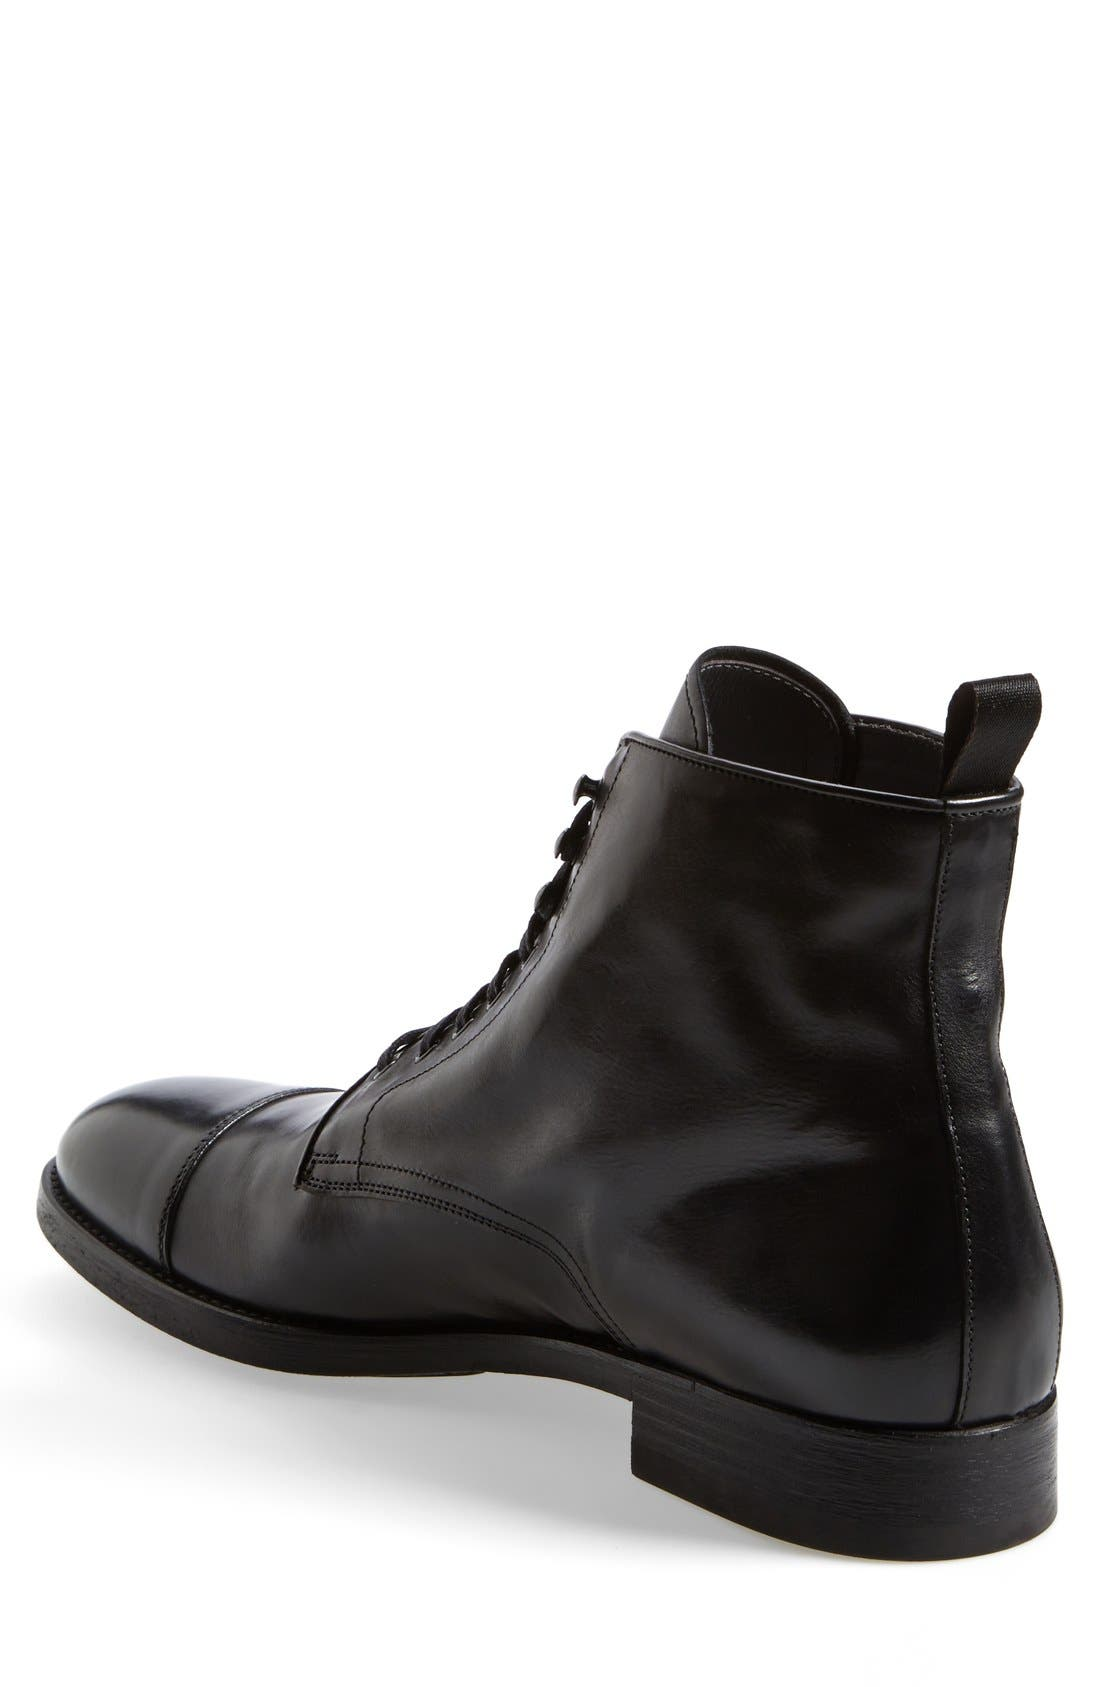 TO BOOT NEW YORK,                             'Stallworth' Cap Toe Boot,                             Alternate thumbnail 2, color,                             001